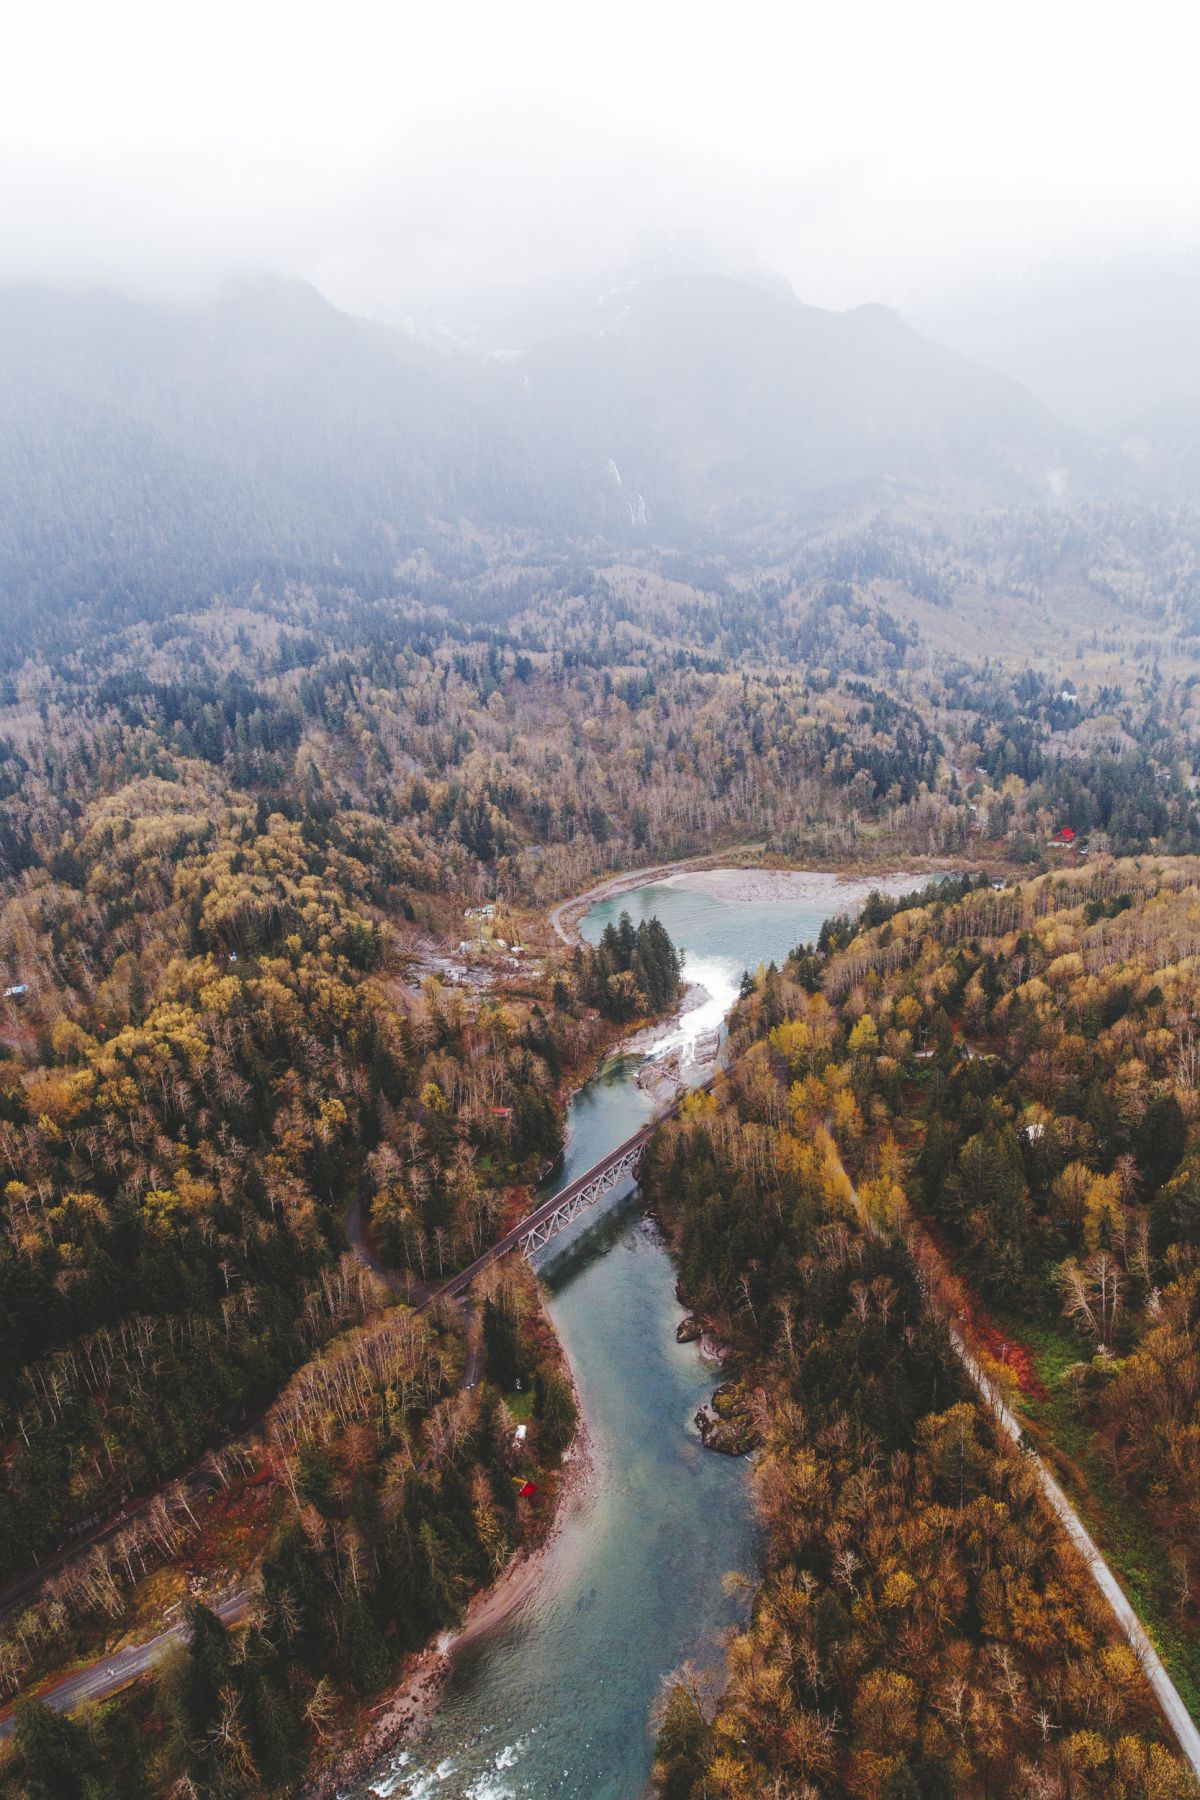 The landscape photography below was taken by Alex Strohl in Cascades Heli which is based in Mazama, Washington, USA. Alex is a French photographer